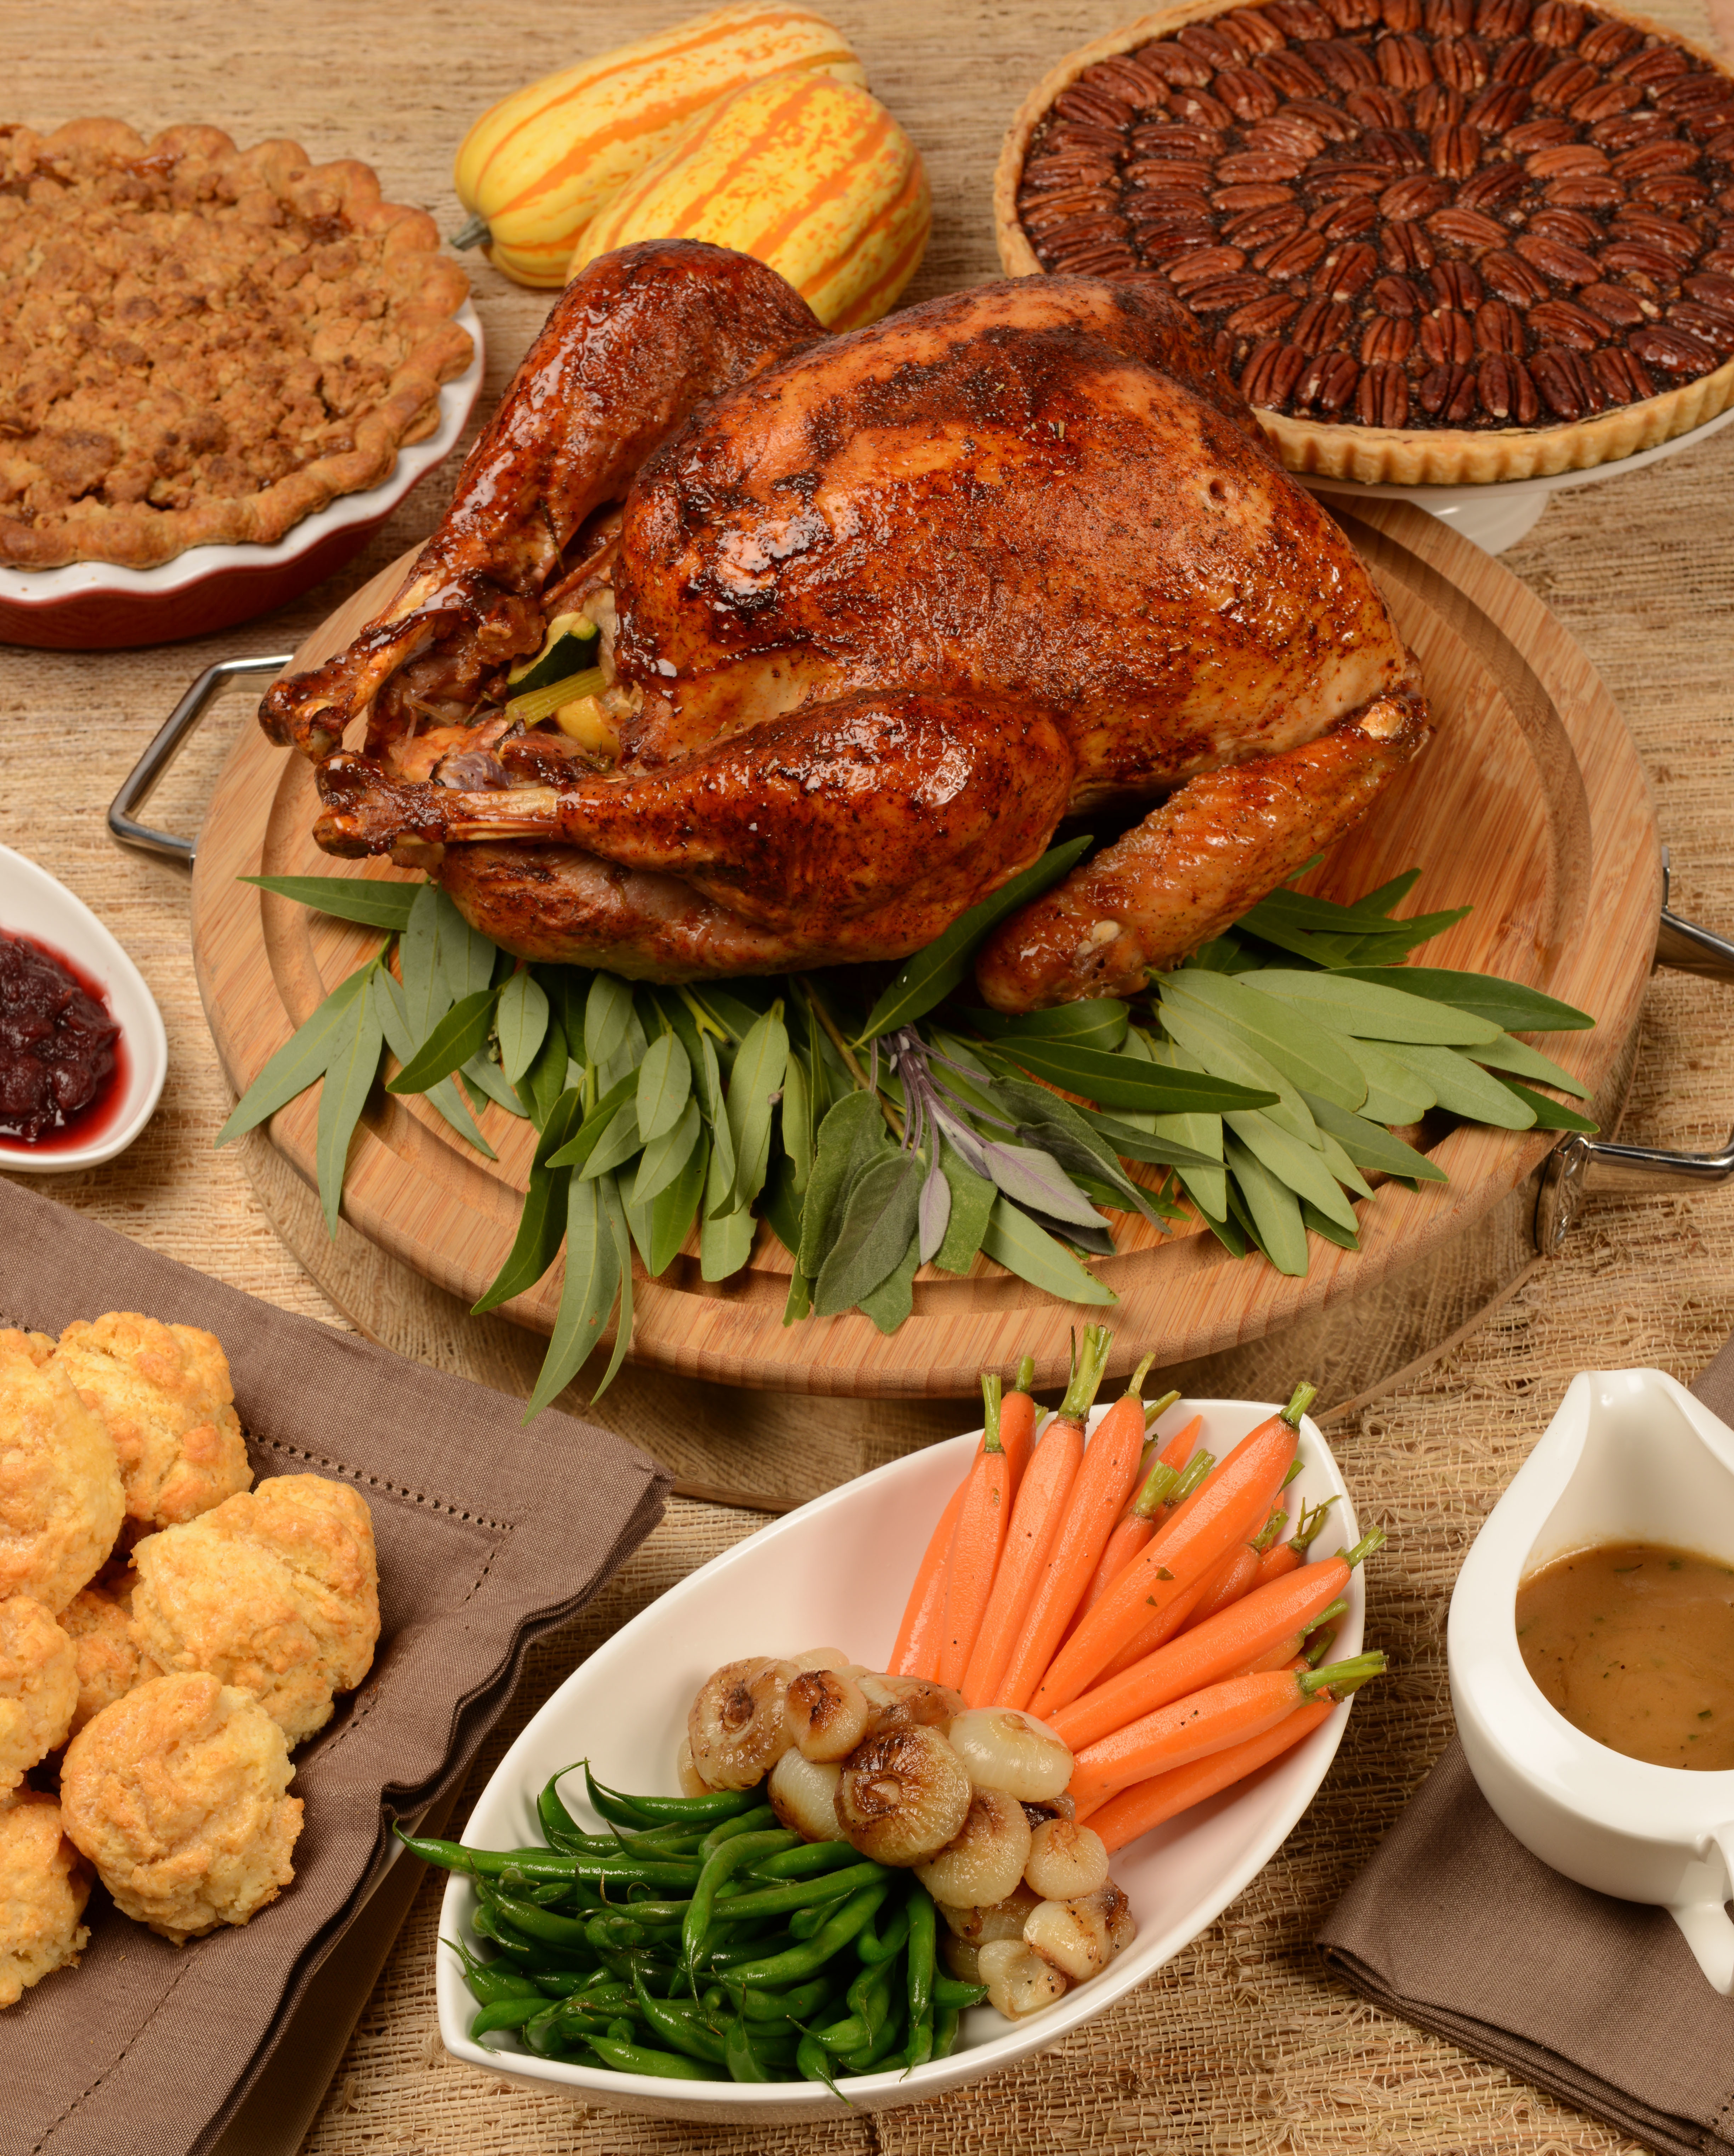 lisa-dupar-thanksgiving-menu-1116-thanksgiving-menu-1116.jpg (skyword:361675)